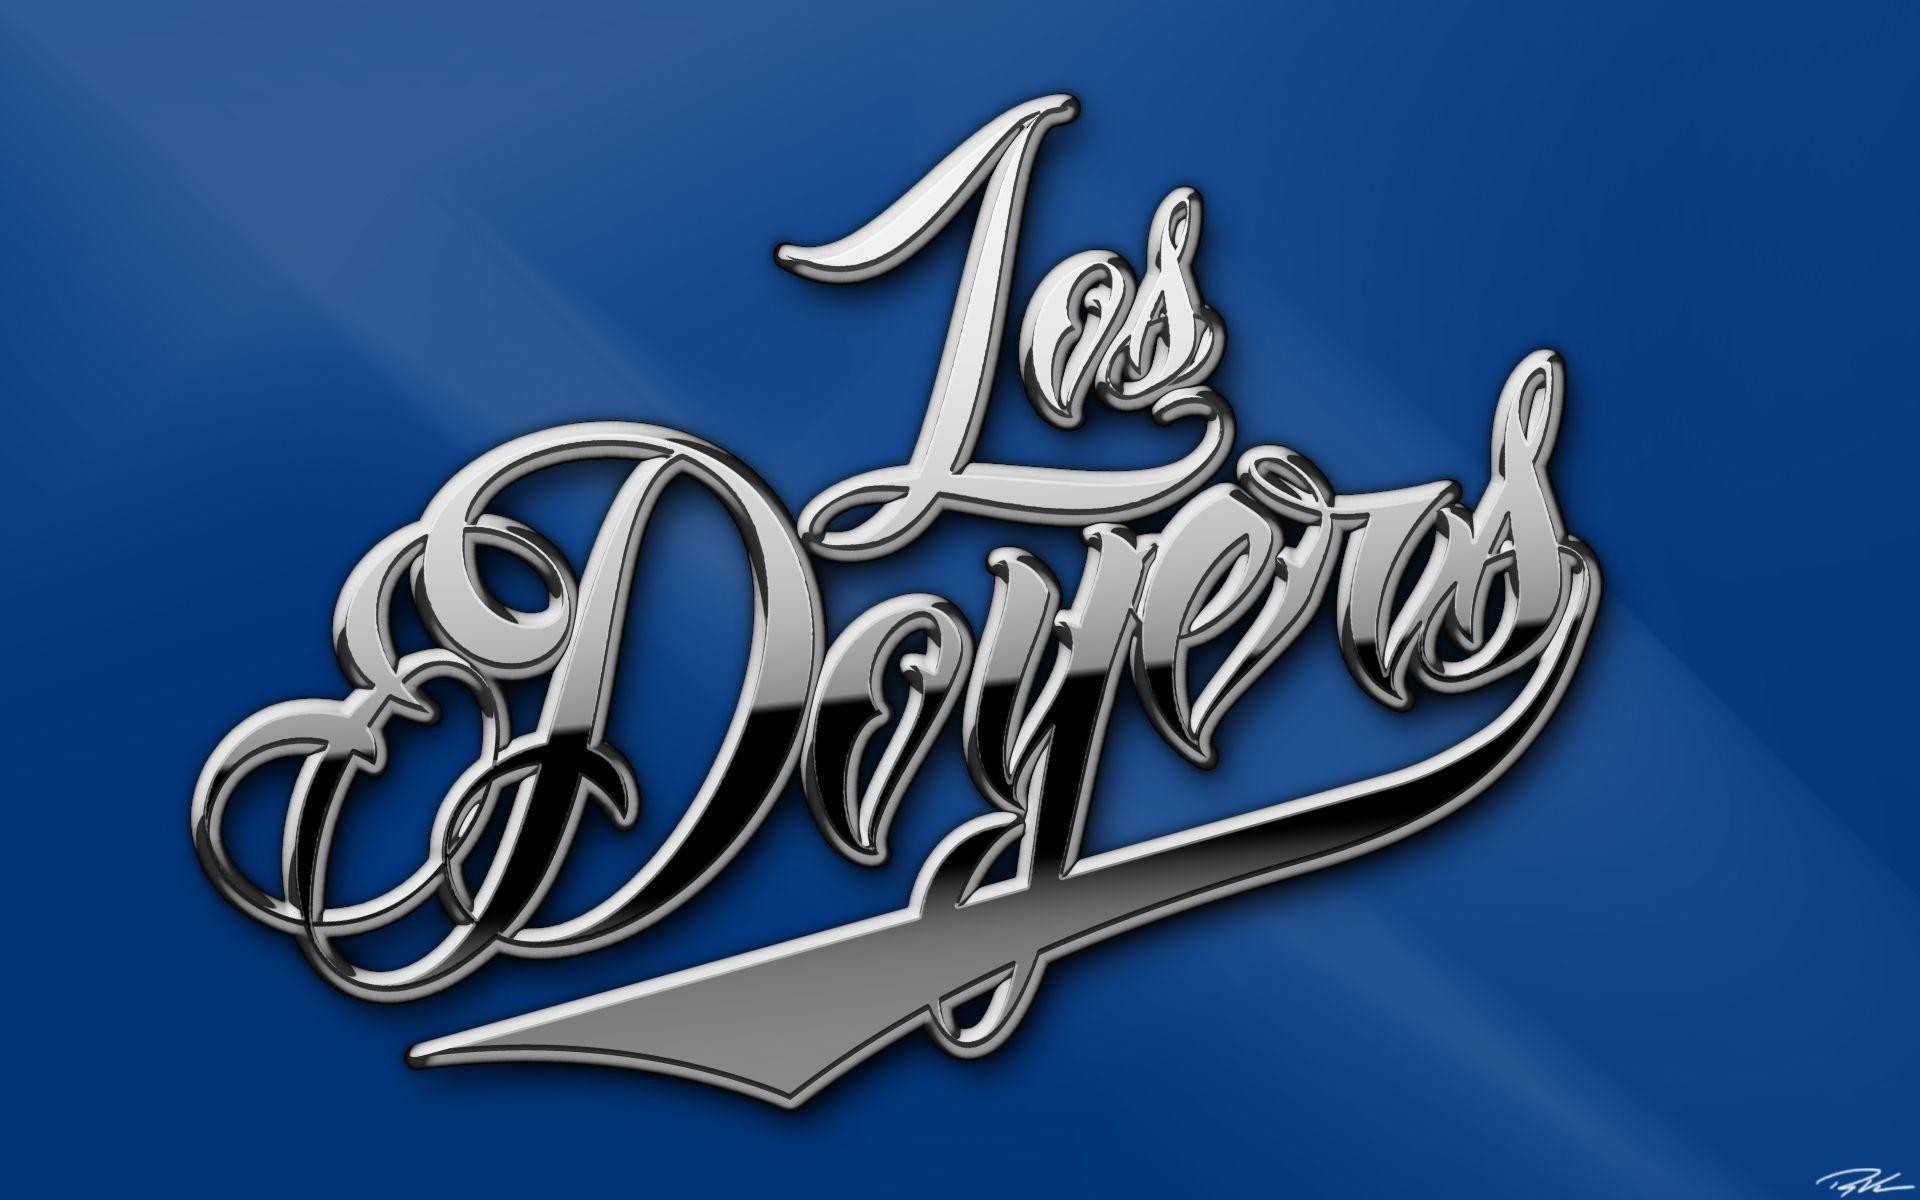 Los Angeles Dodgers Wallpaper 183 ①